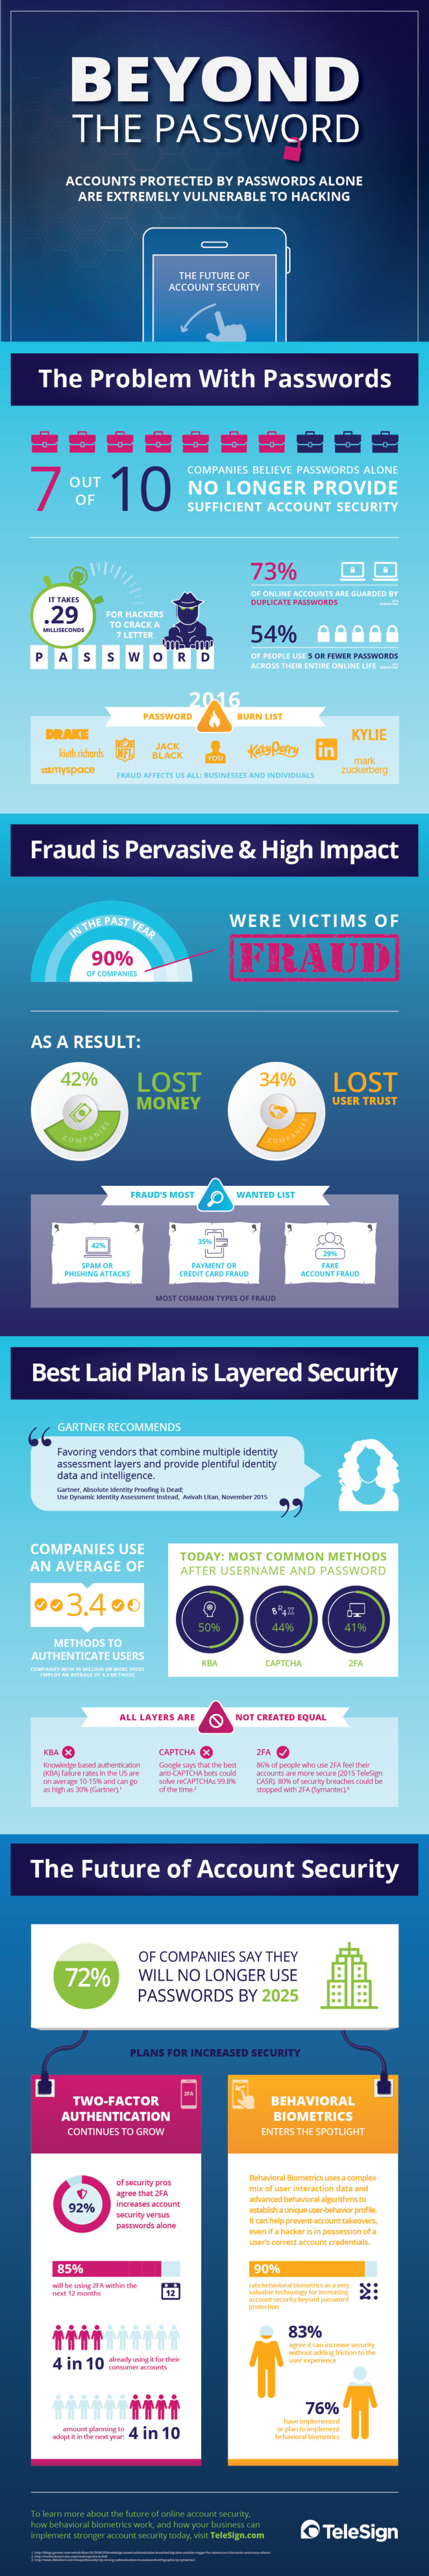 TeleSign-Future-of-Account-Security-Report-infographic-768x4608